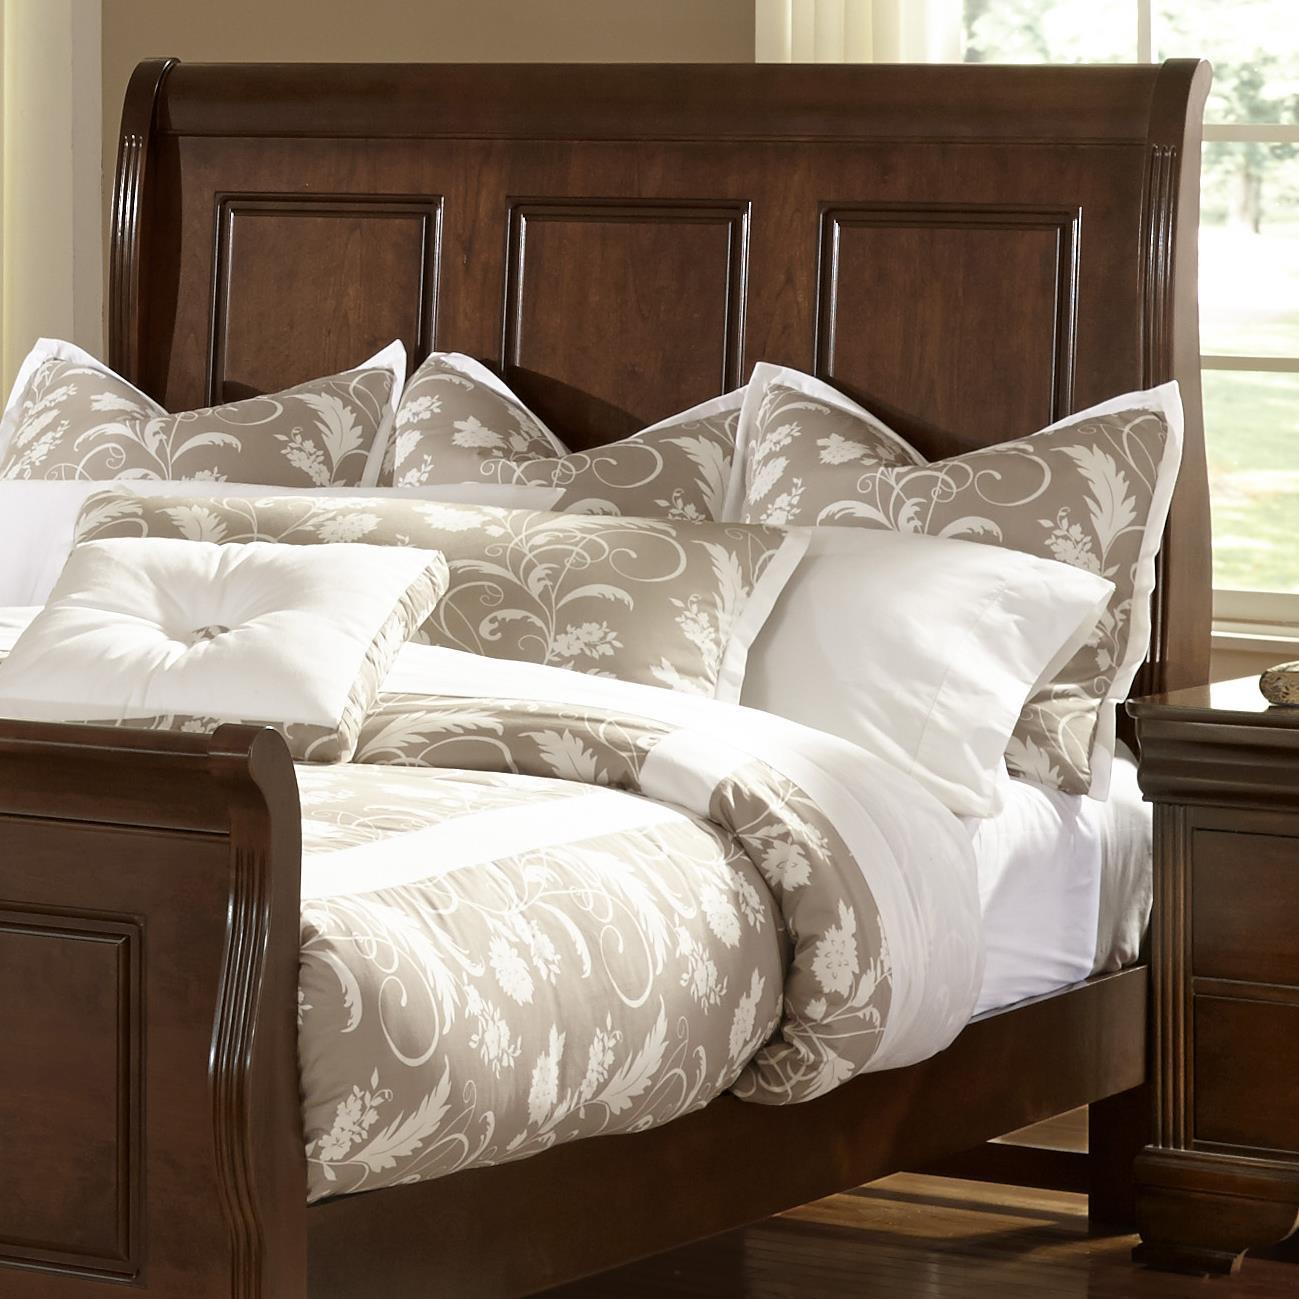 Vaughan Bassett French Market Queen Sleigh Headboard - Item Number: 382-551